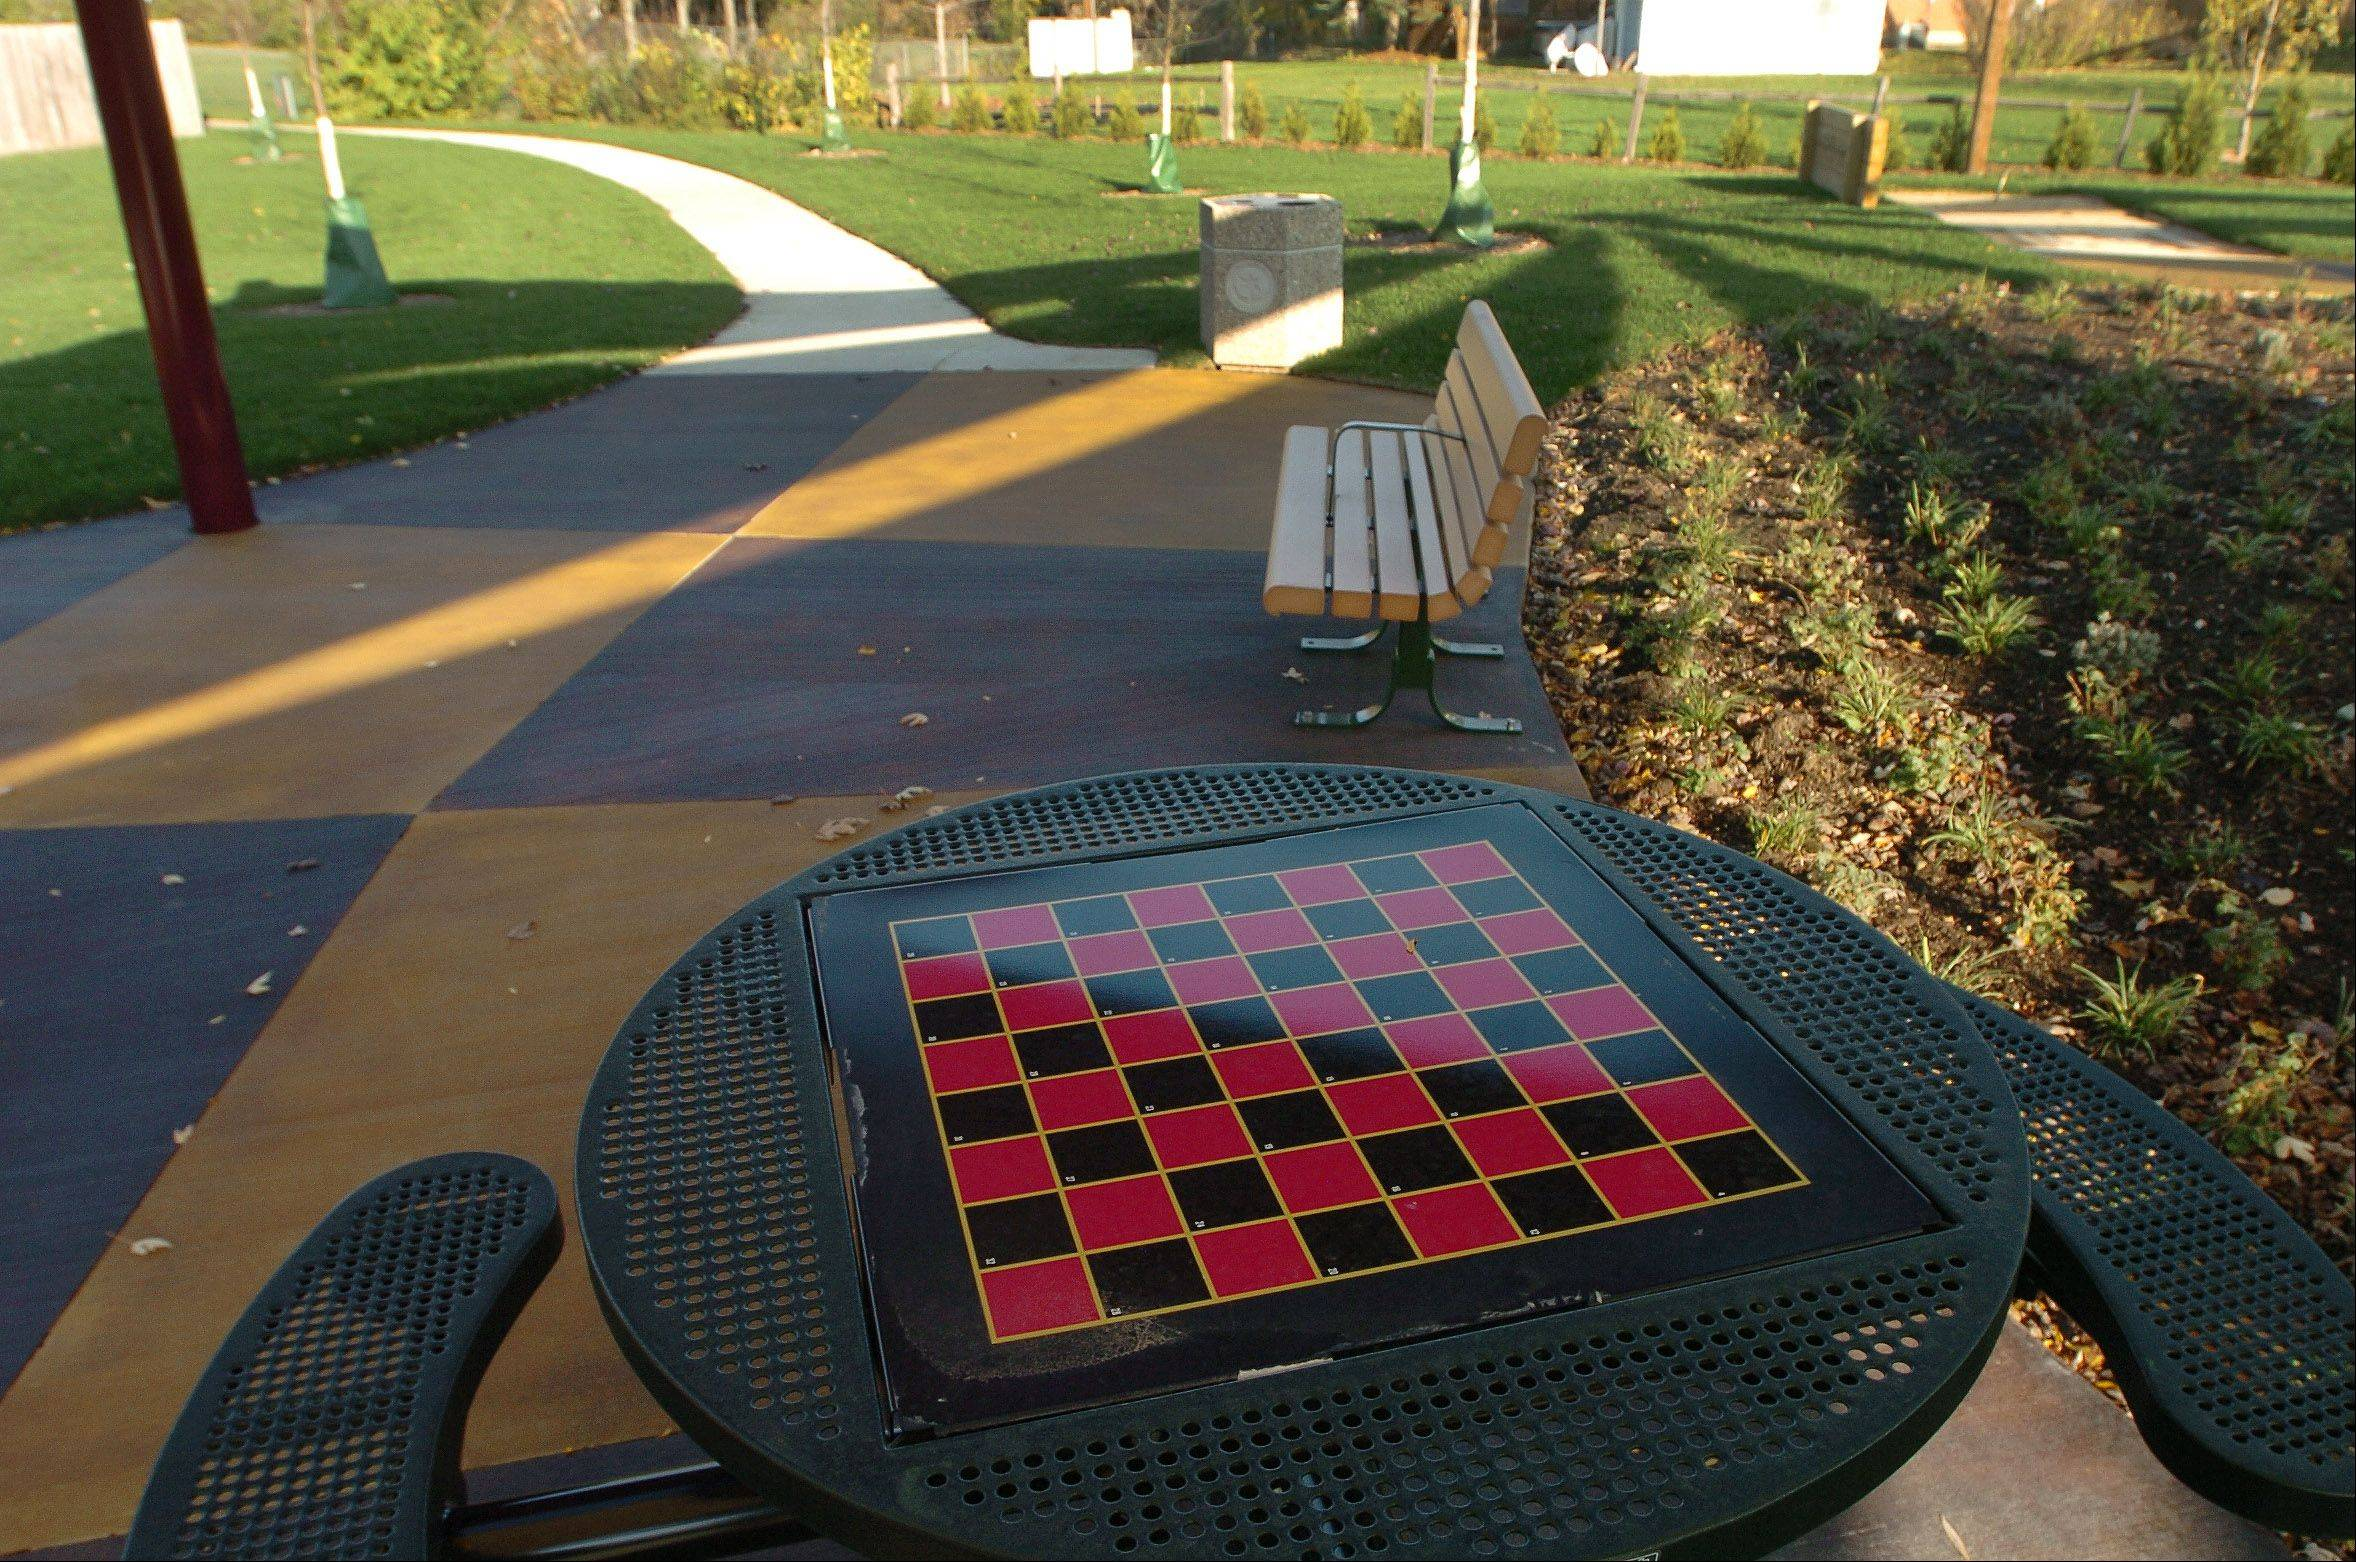 This is the new chess table at Tropicana Park in Hoffman Estates.